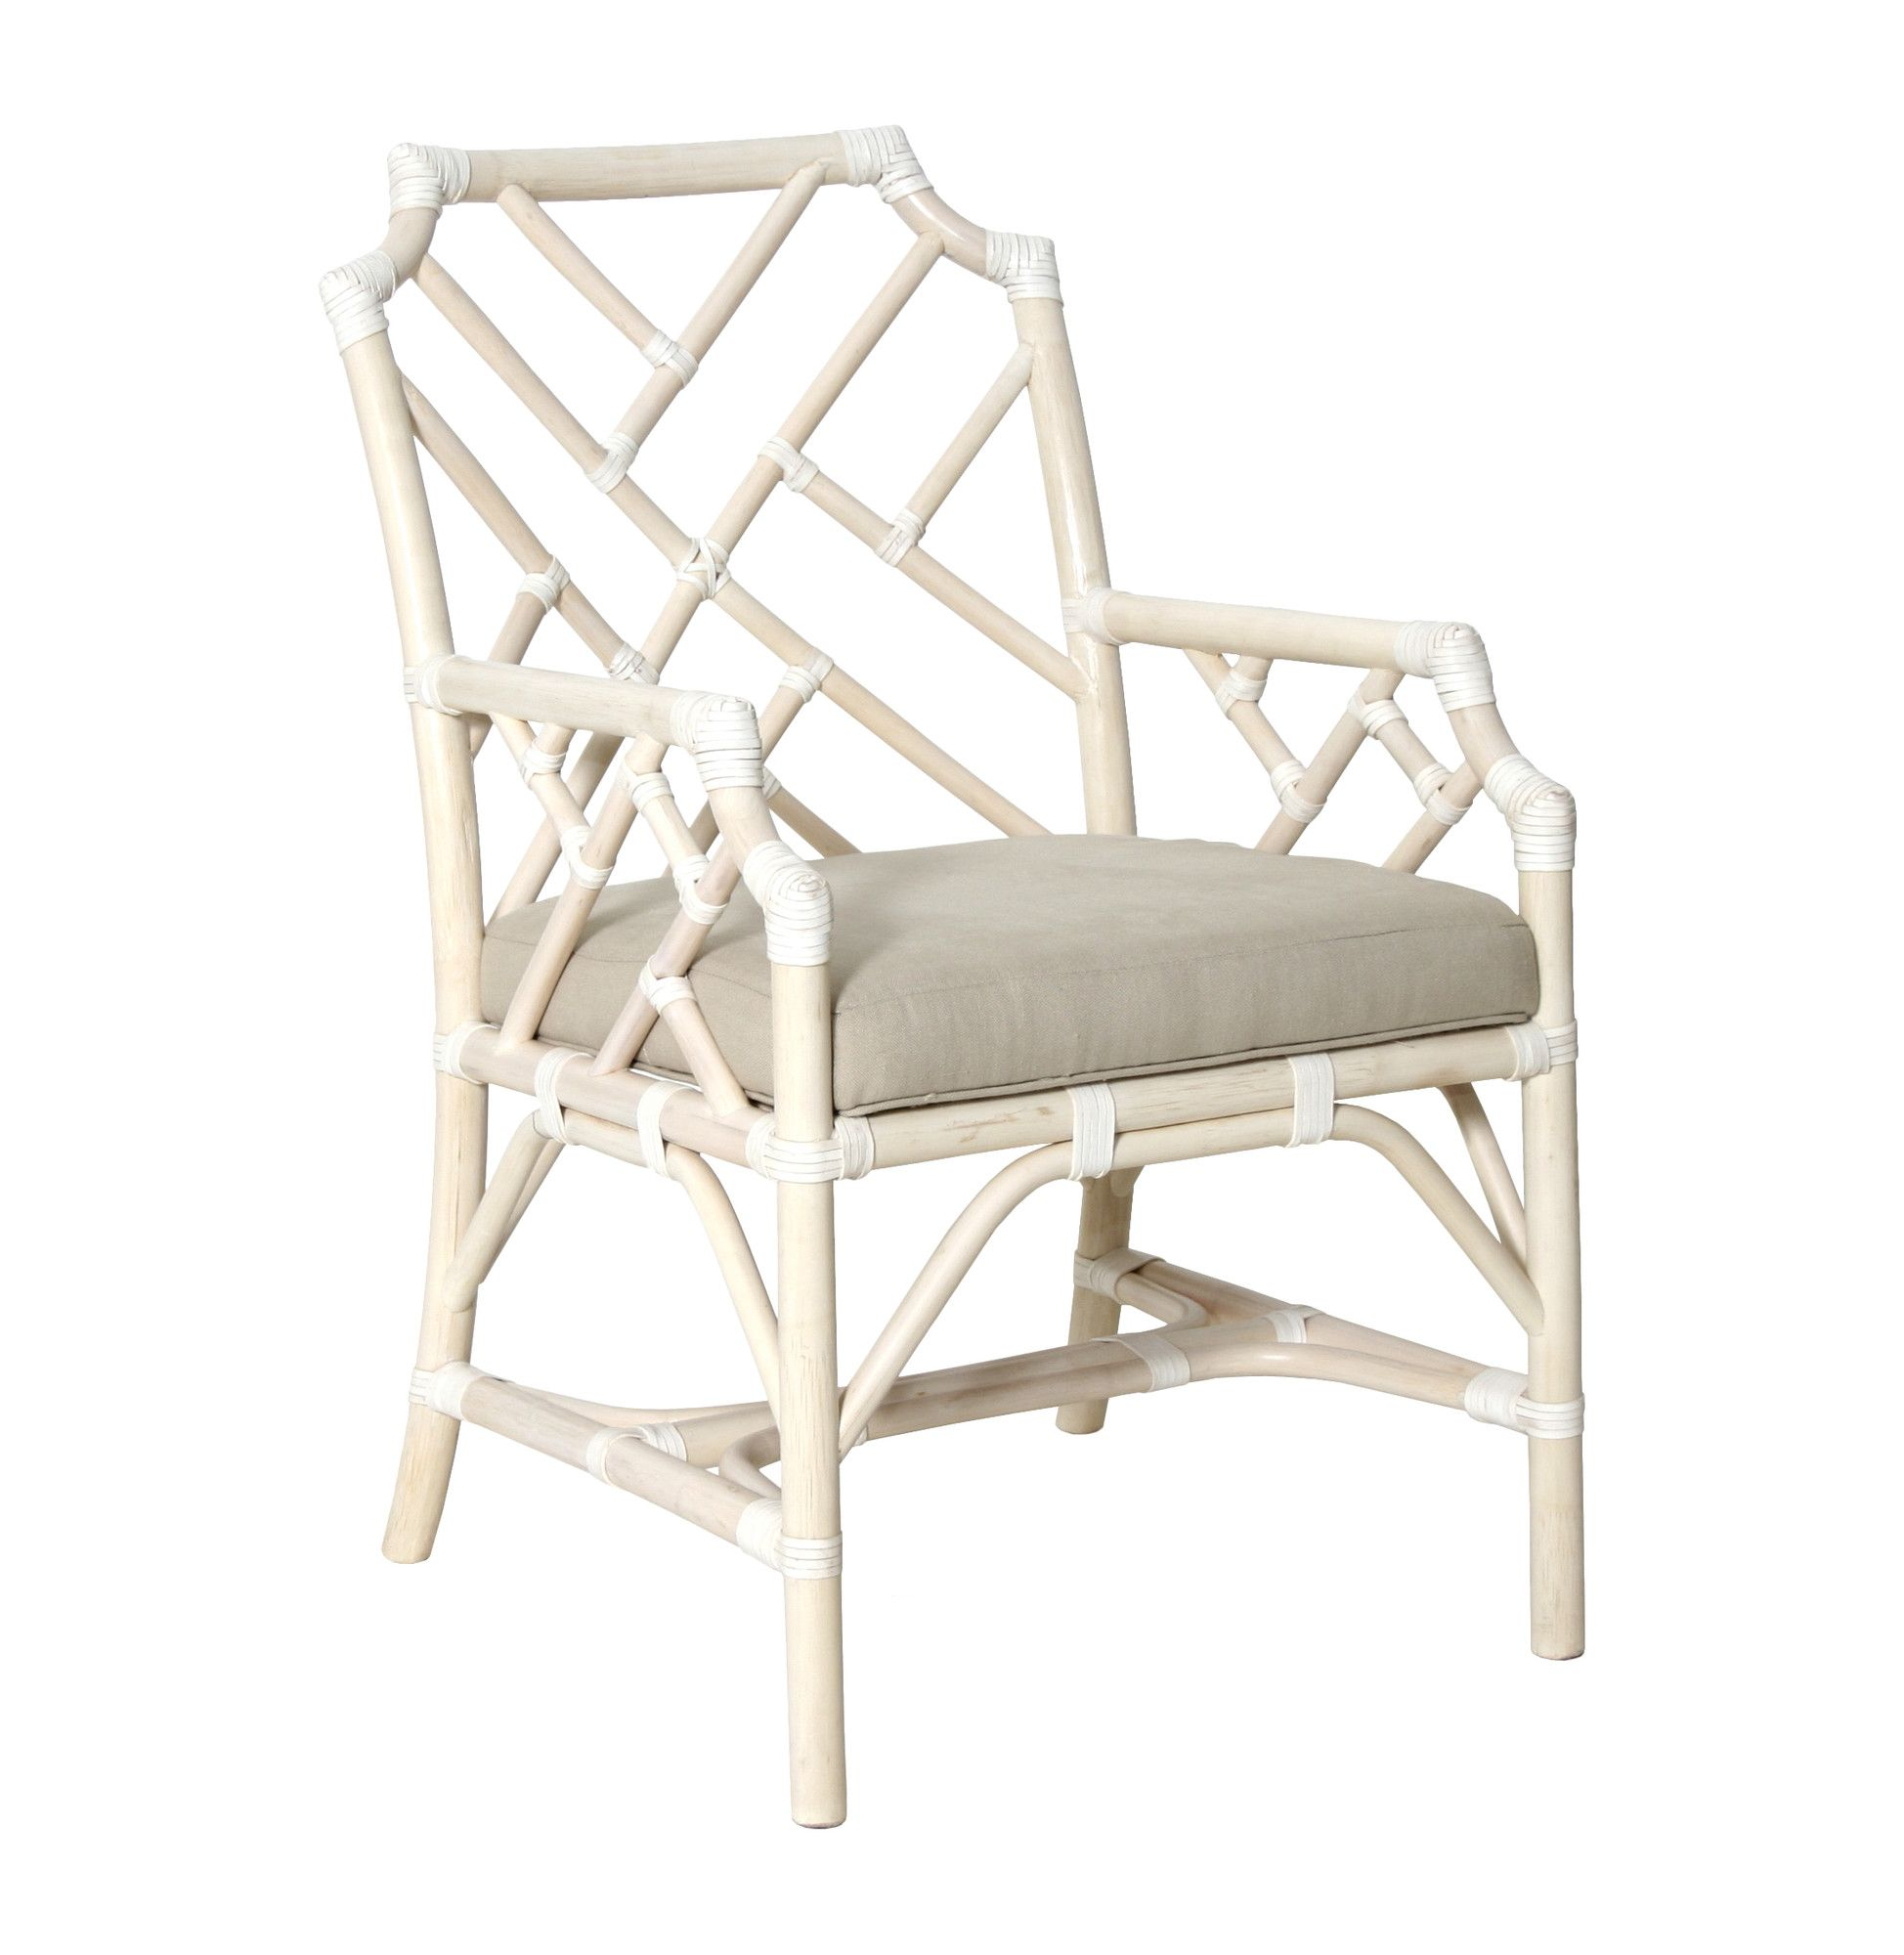 New classics palm beach dining chair with cushion products